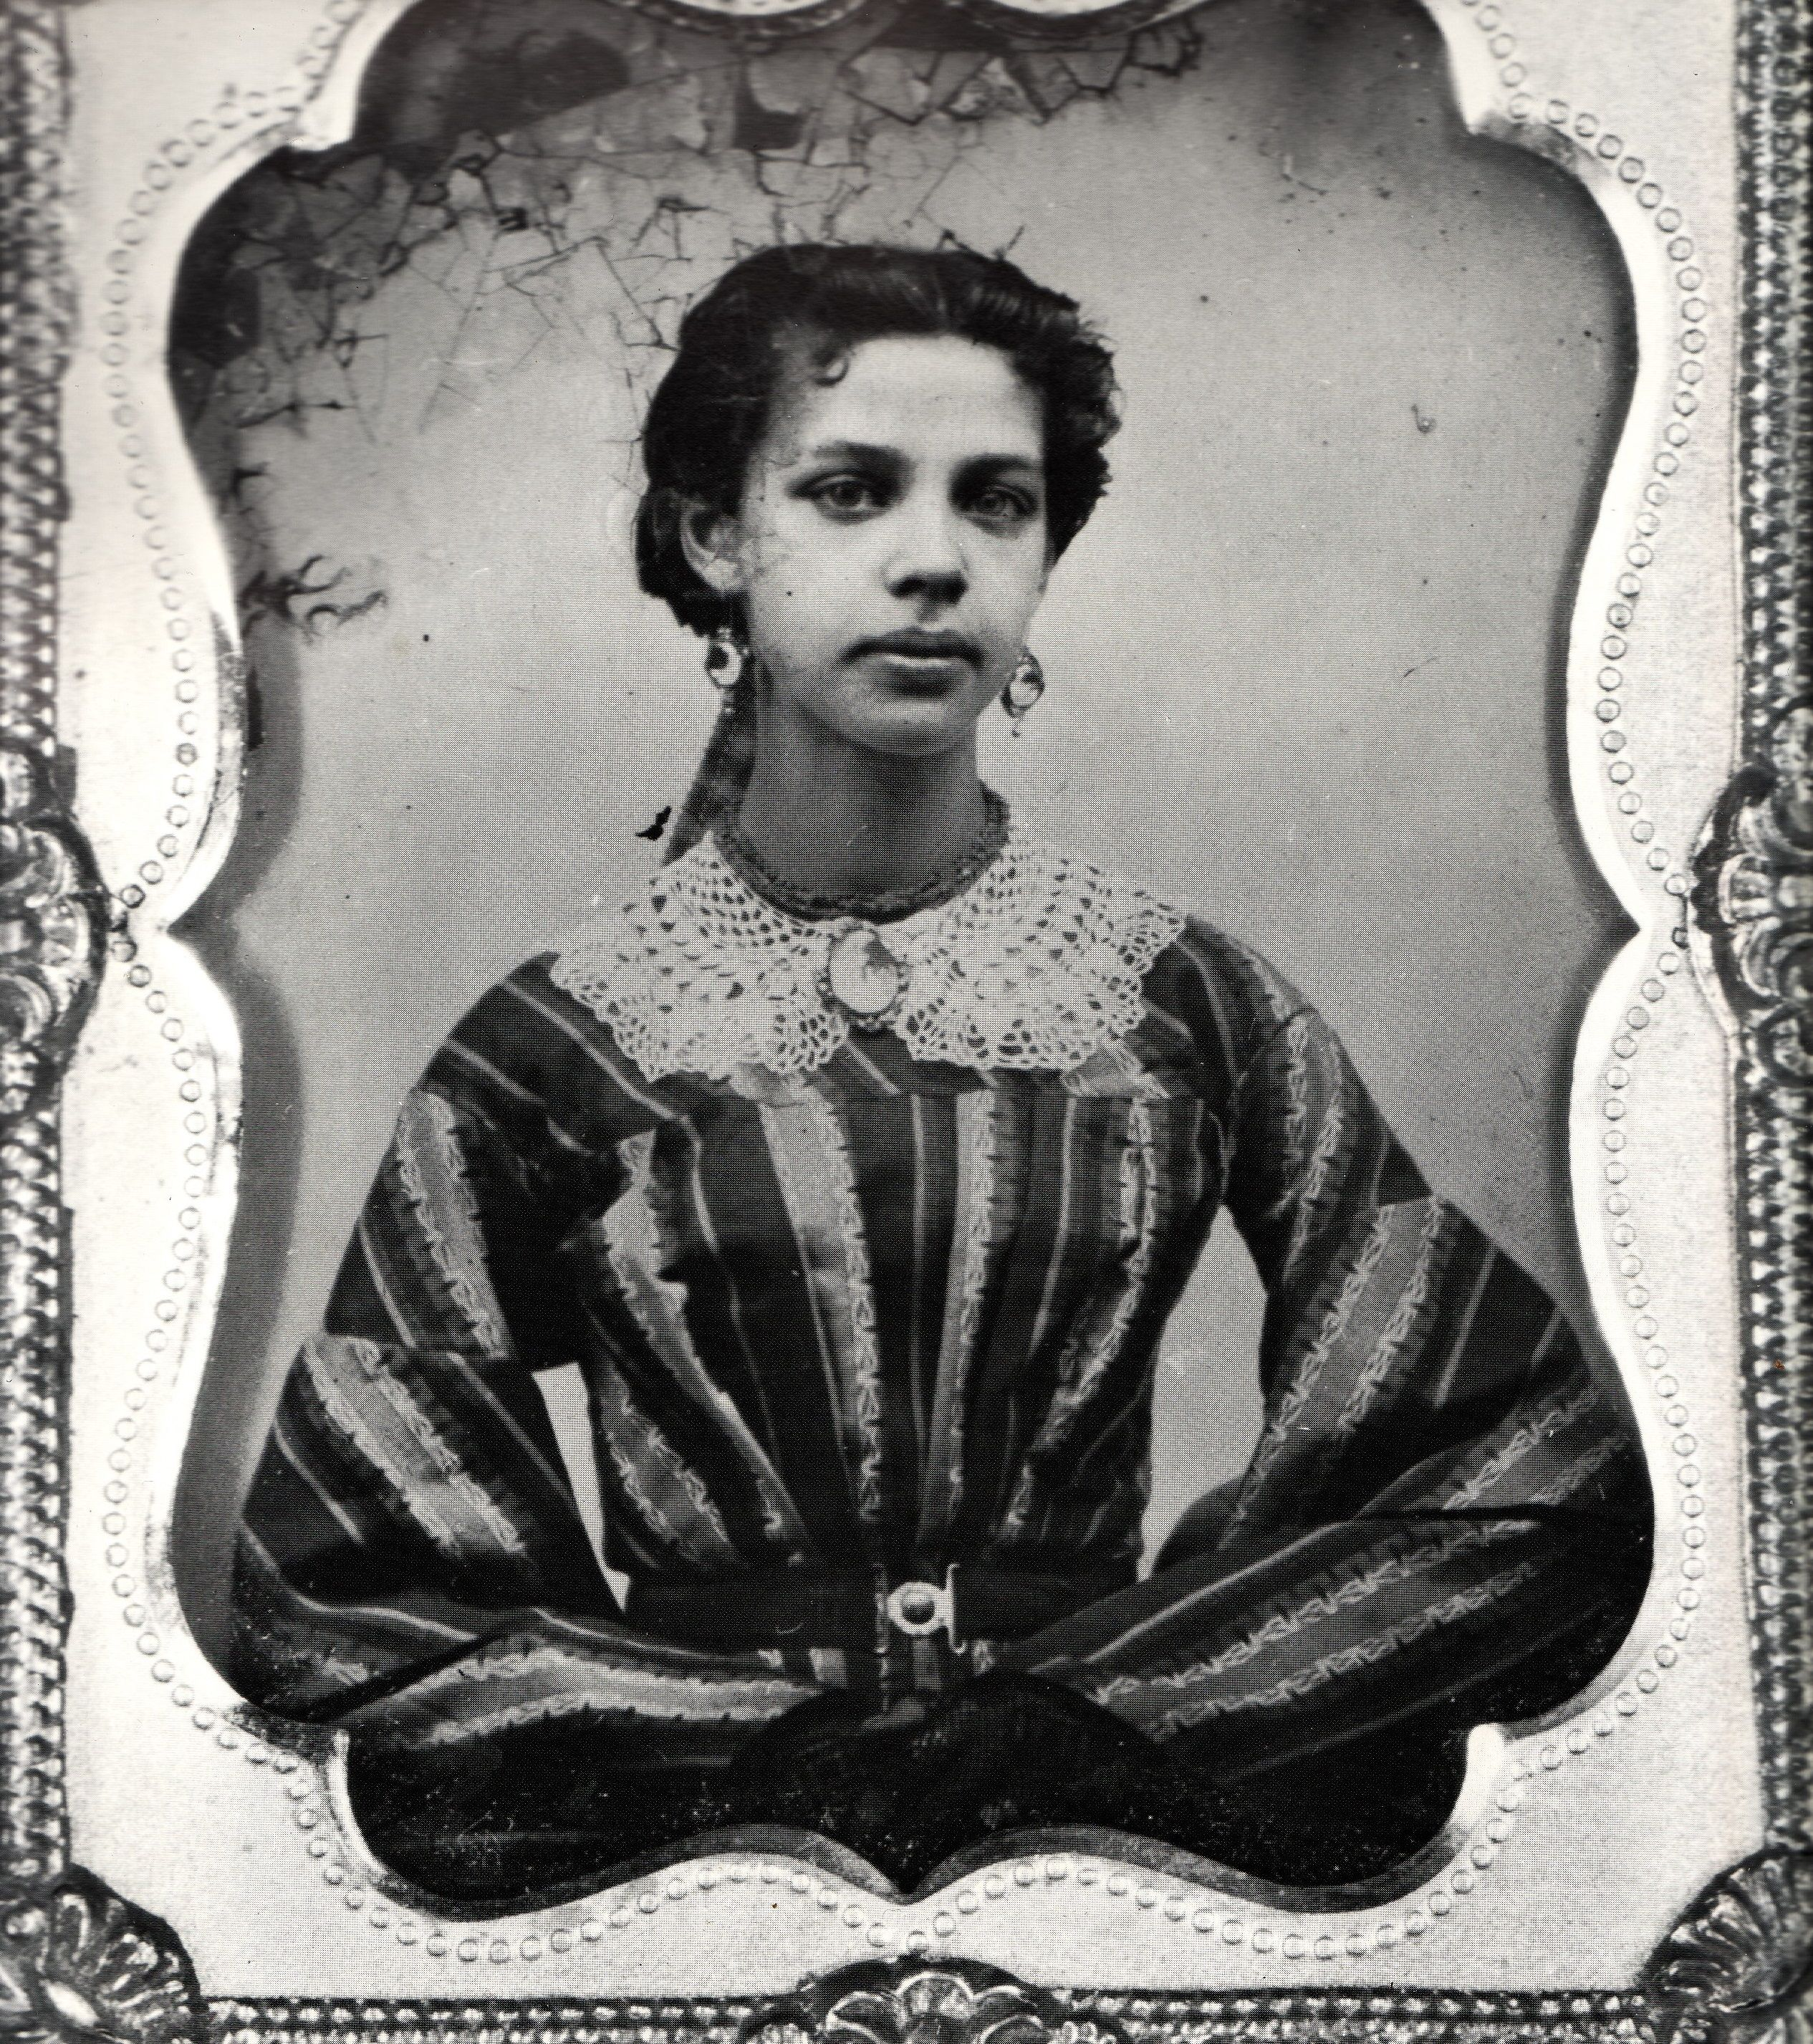 Duchenne De Boulogne Pronunciation C 1850s Young Woman Possibly Of Mixed Race Heritage 1840